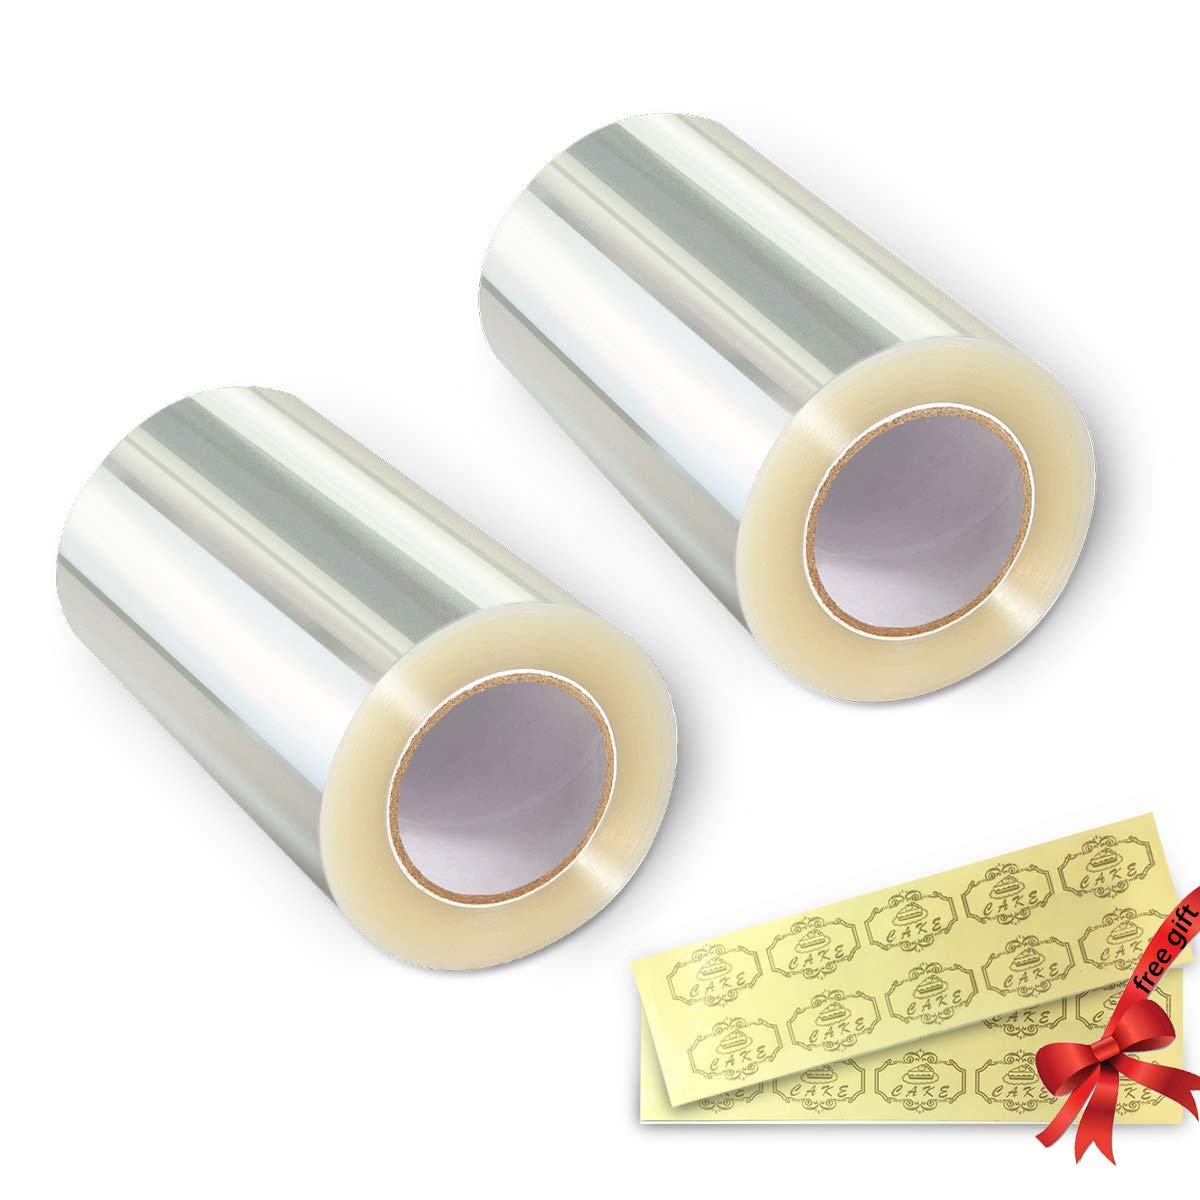 Cake Collars 10cm x 10m x 125micron - Vindar Clear Polyester Plastic Strips, Transparent Polyester Plastic Roll, Mousse Cake Collar for Chocolate Mousse Baking, Cake Decorating